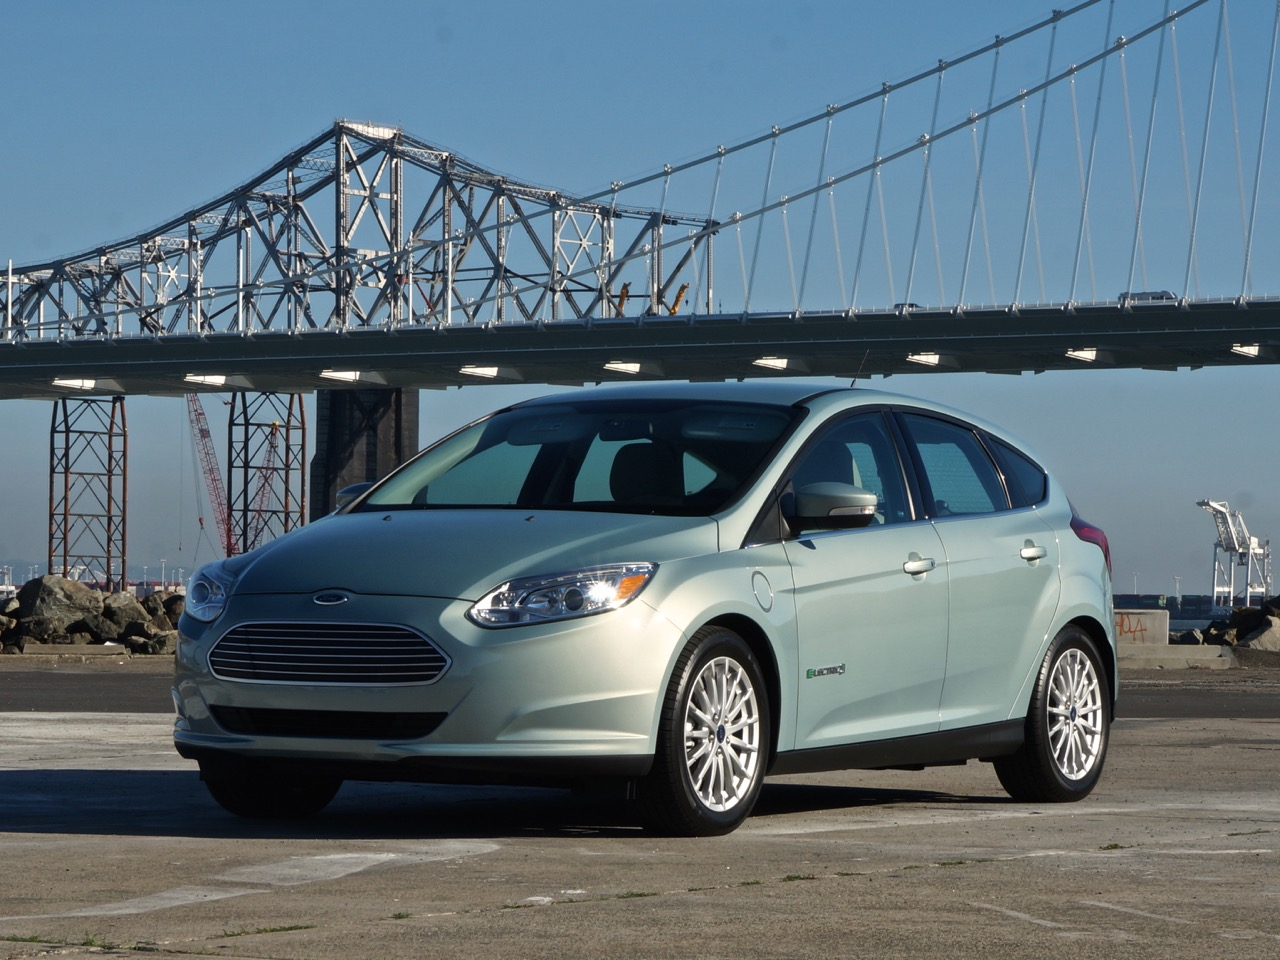 Least Reliable: Ford Focus